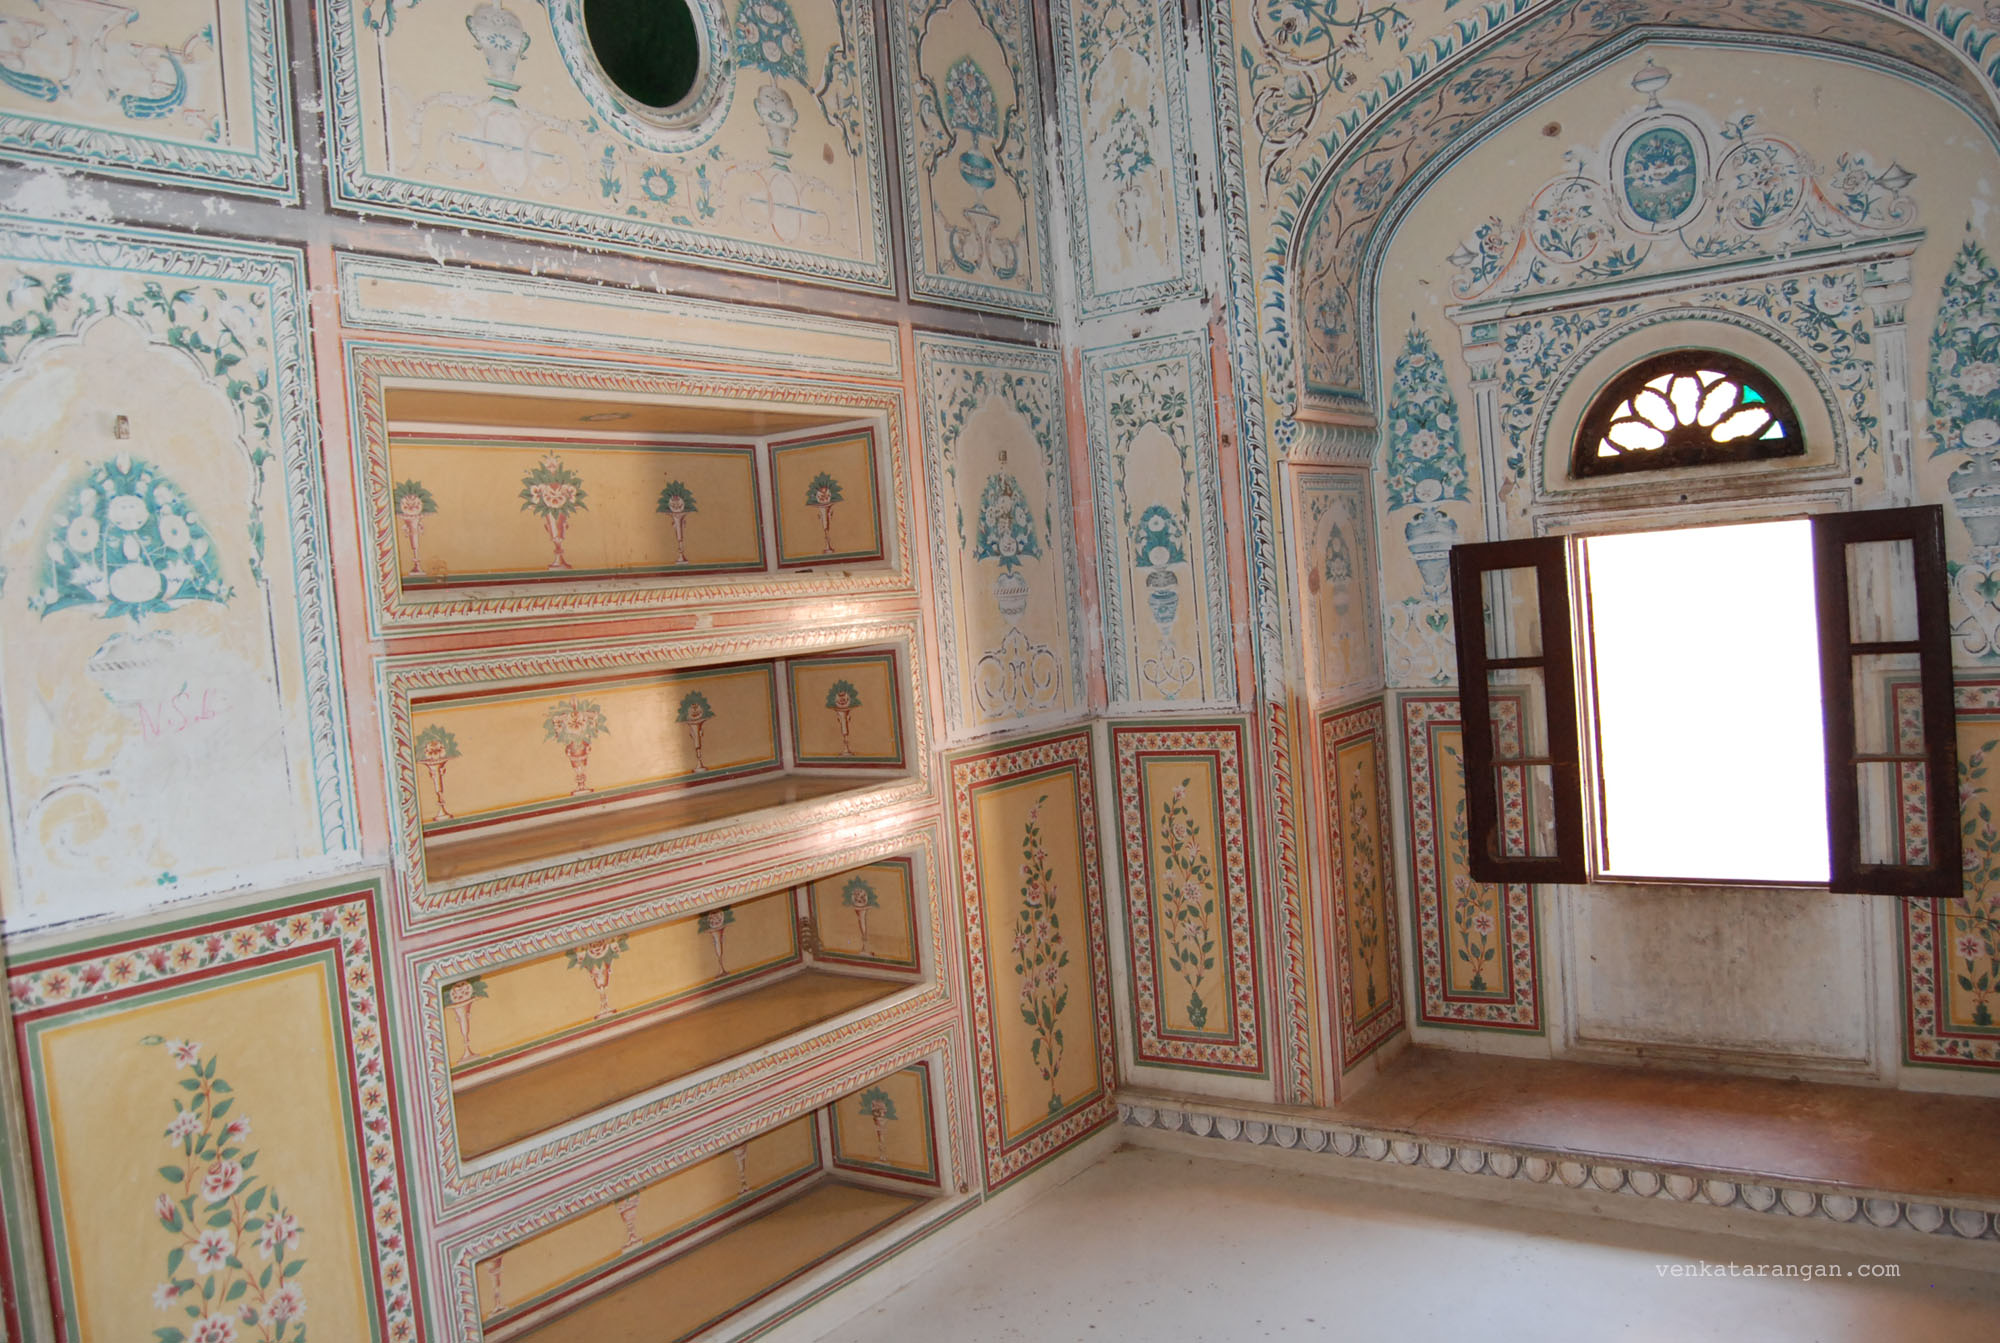 Queen chambers in Madhvendra Palace